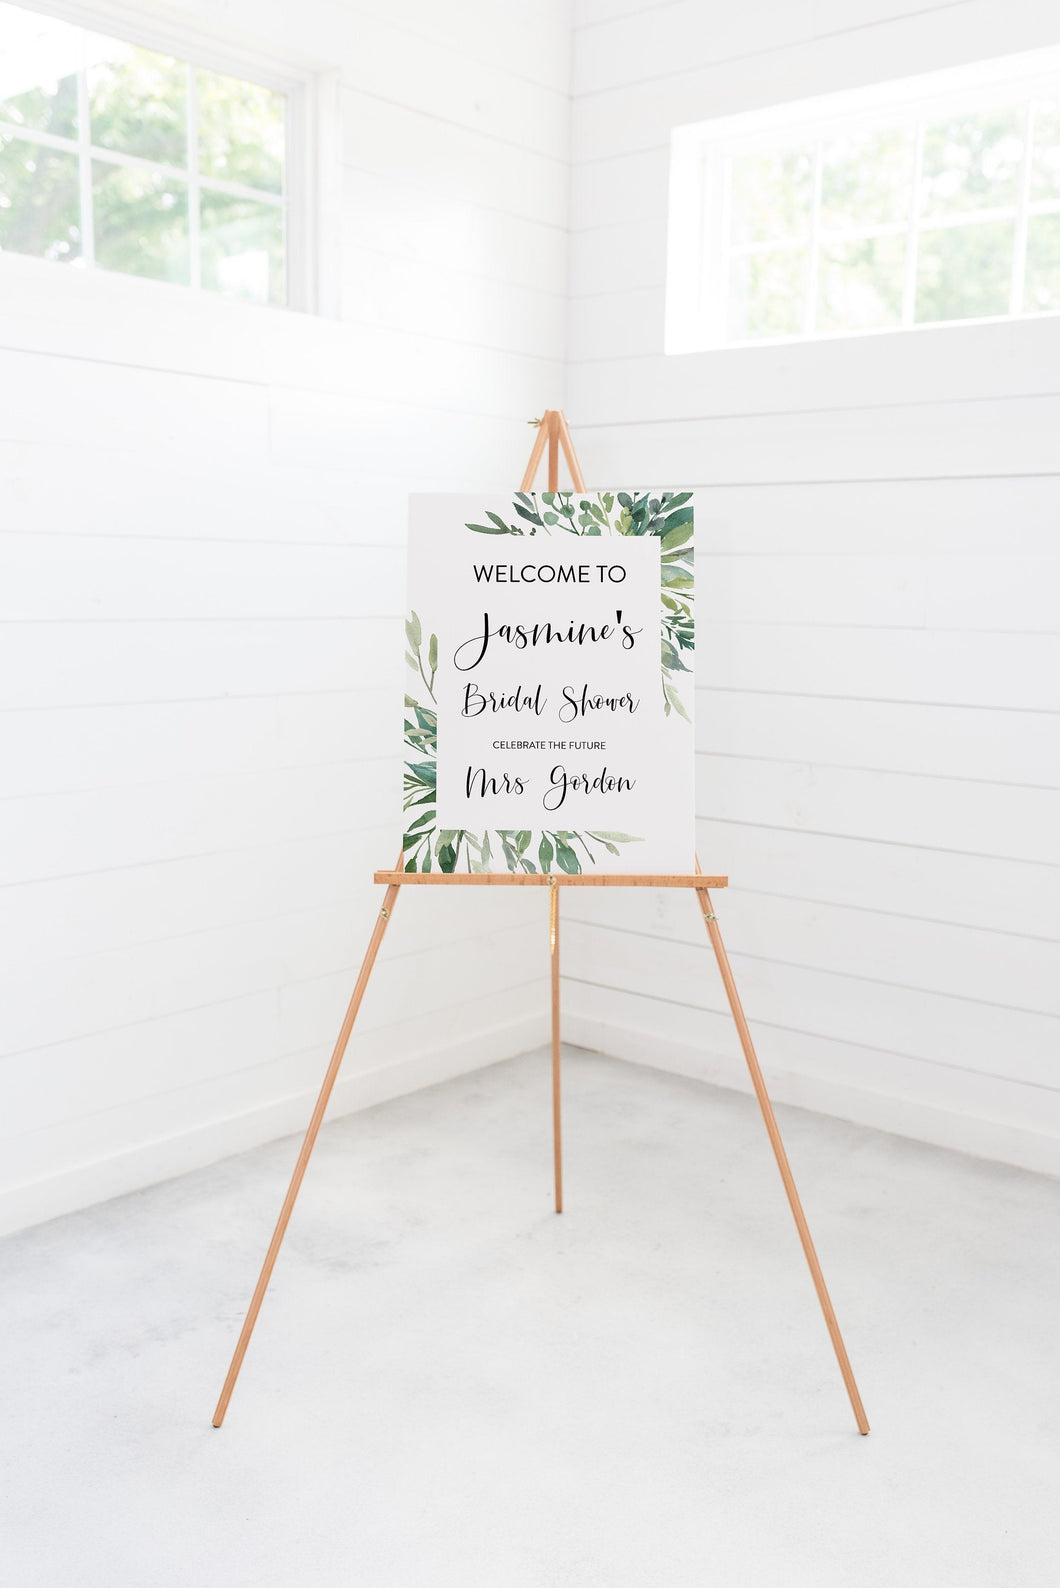 Printable Bridal Shower Welcome Sign Template Editable Instant Download Wedding Décor Greenery - Jasmine